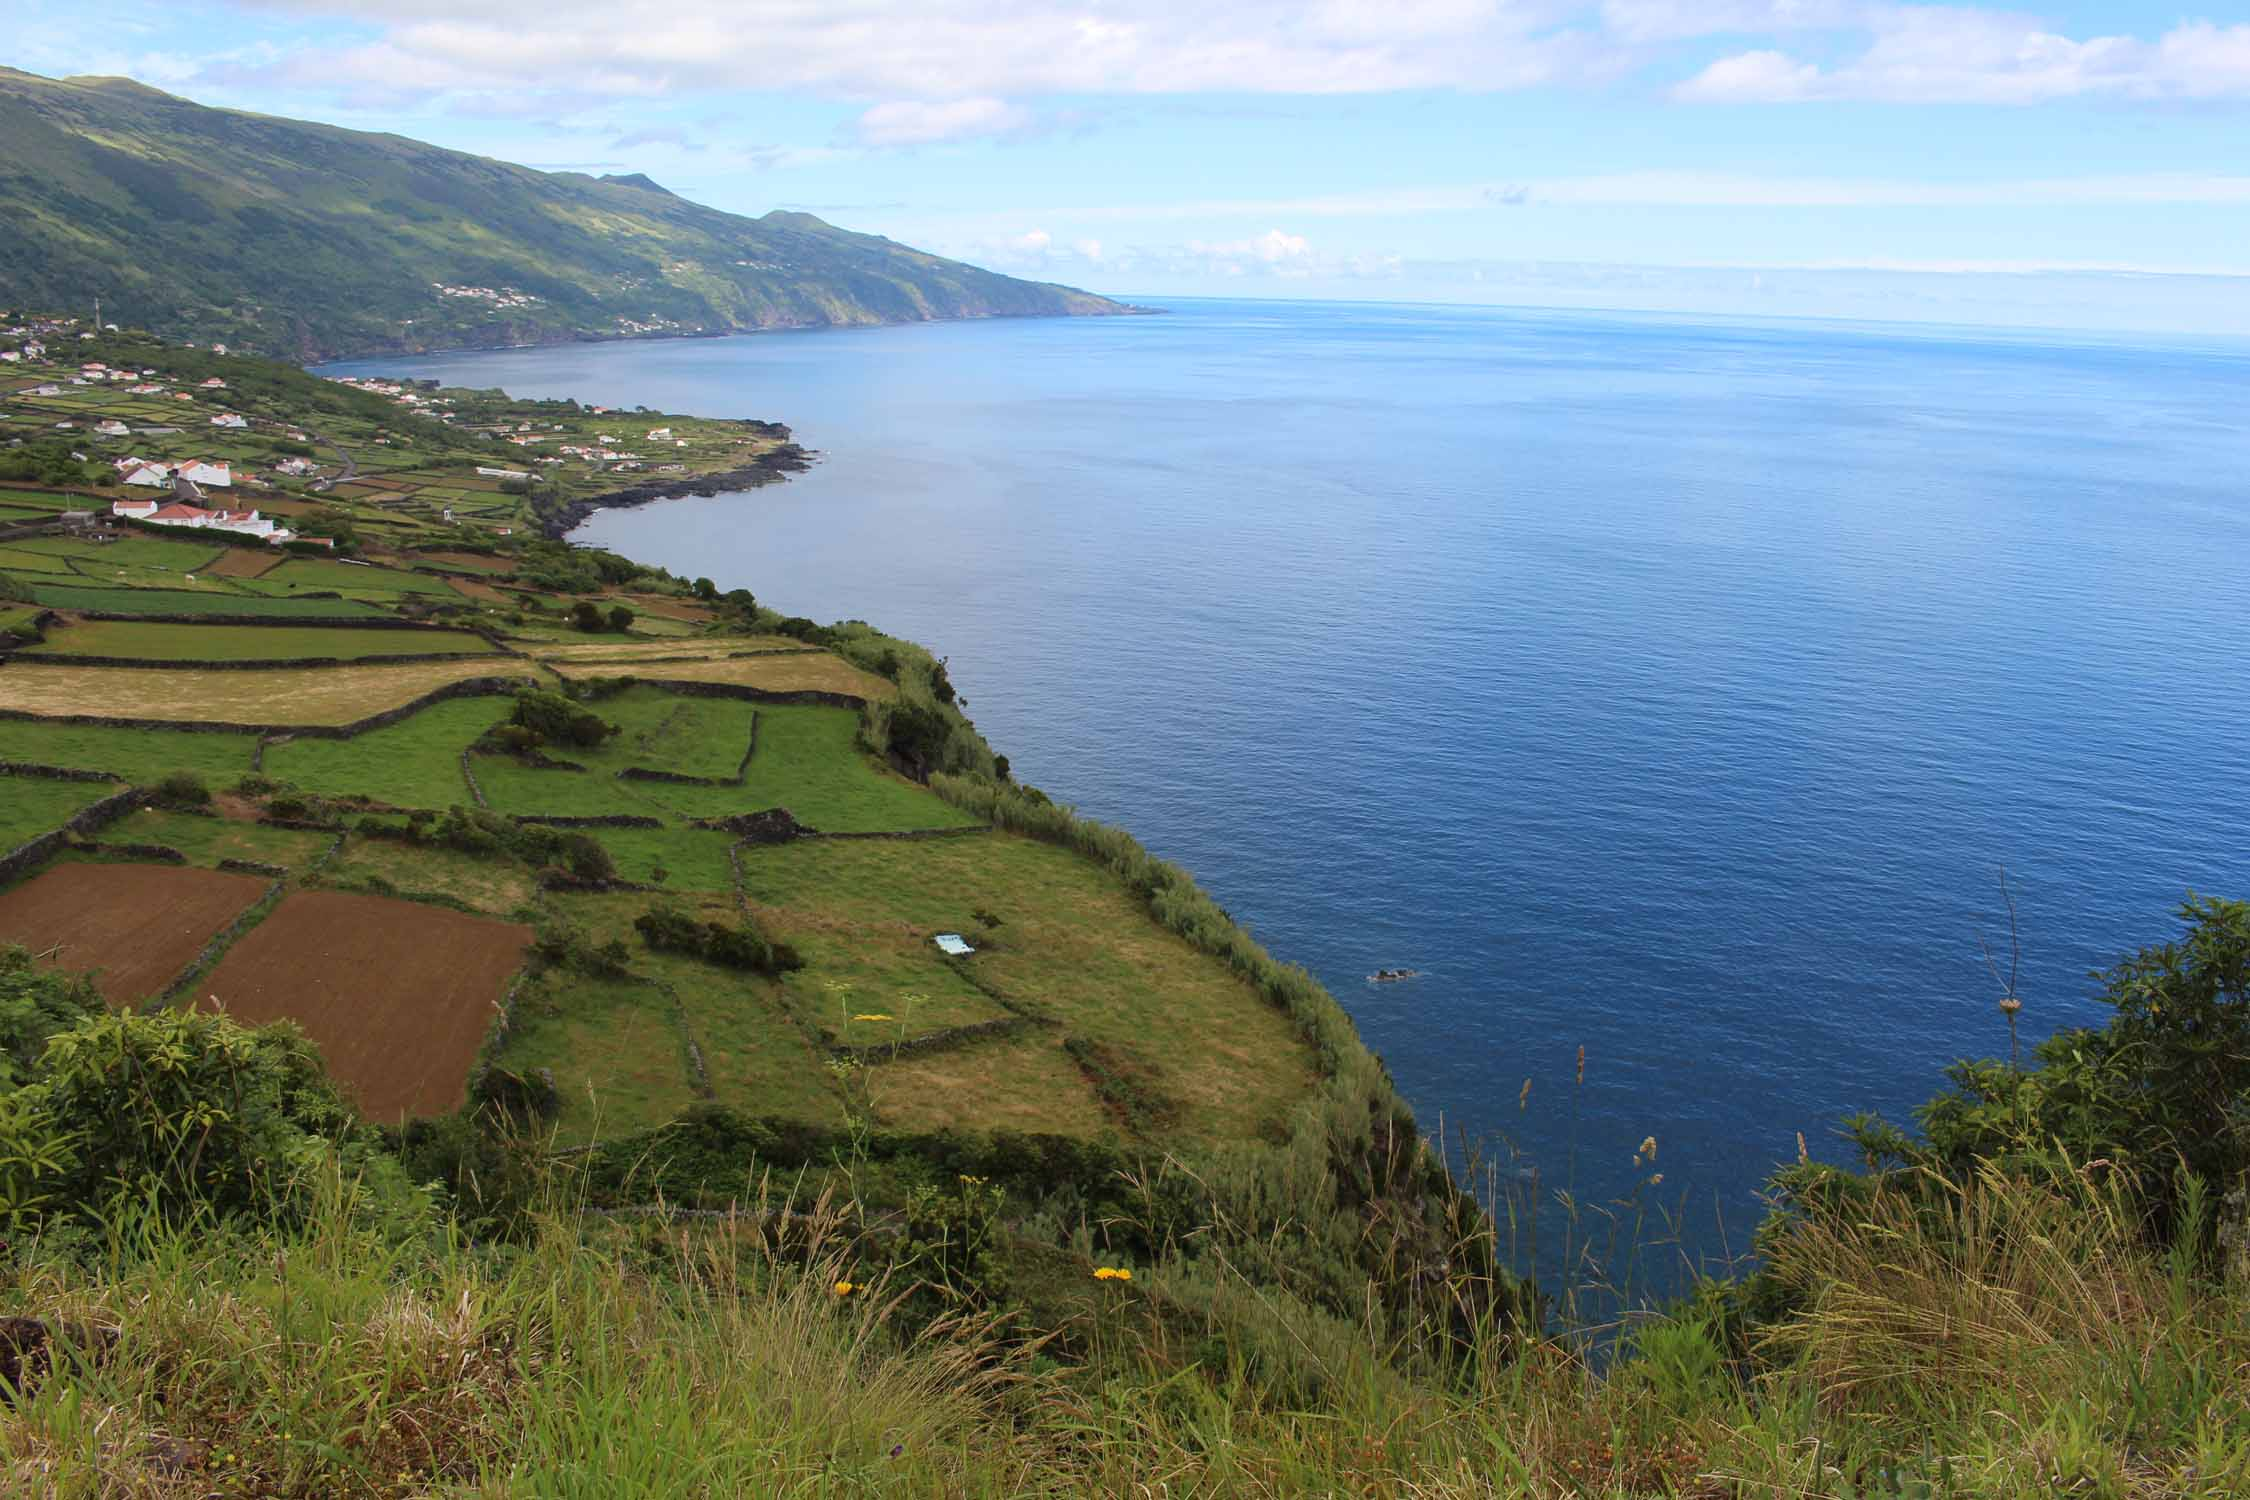 Beautiful landscape in the south coast of Pico Island, Azores